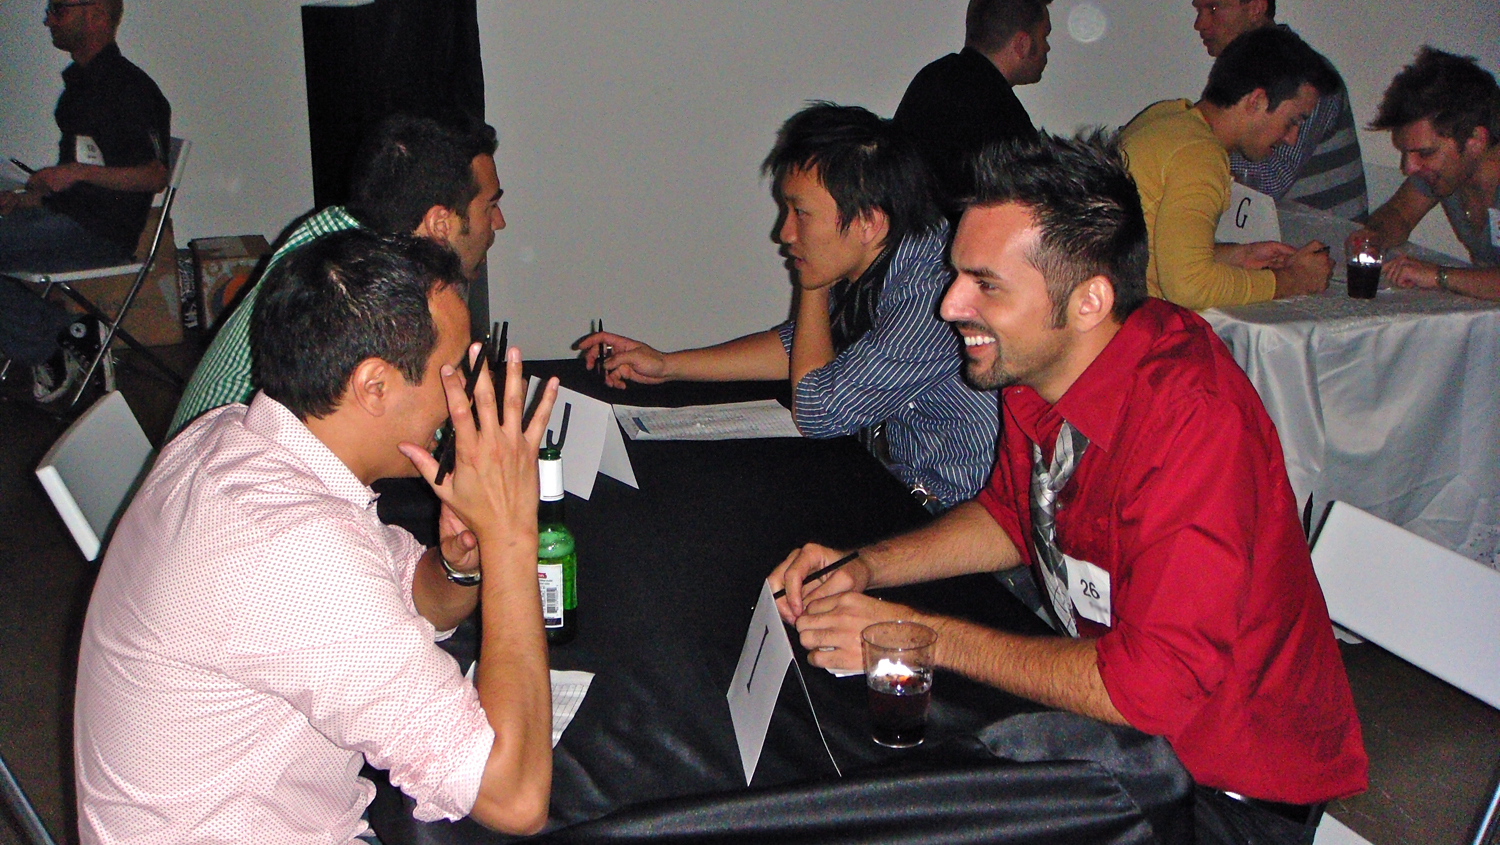 gay speed dating herts Eventbrite - be single no more presents gay men speed dating all ages -  wednesday, september 5, 2018 at boxers phl, philadelphia, pa.